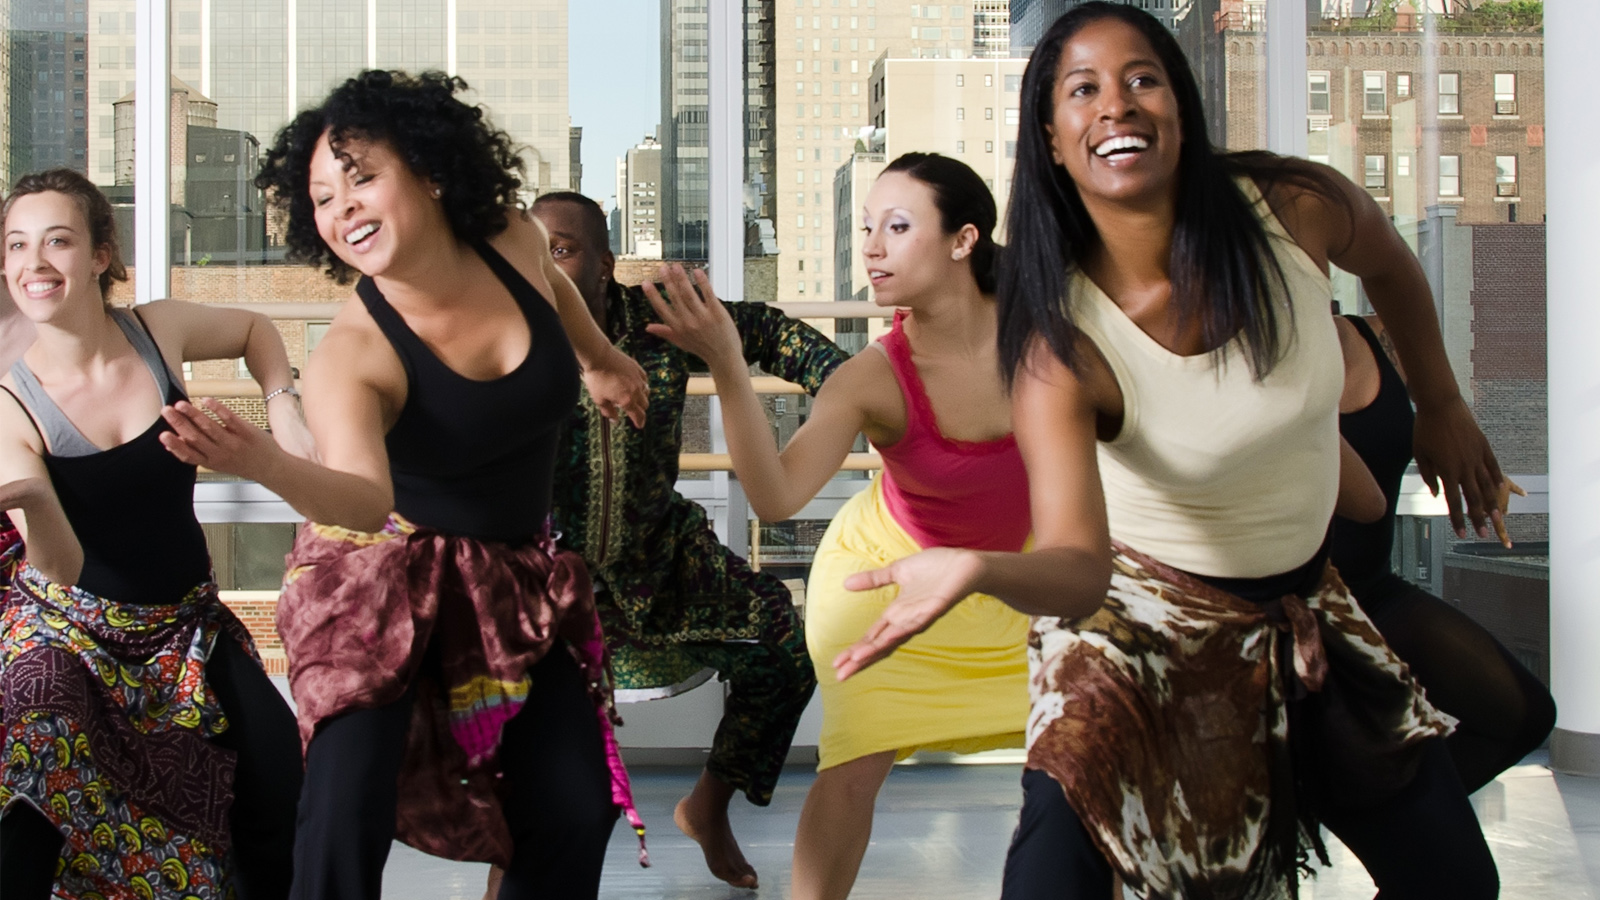 Dance Amp Fitness Classes Alvin Ailey American Dance Theater